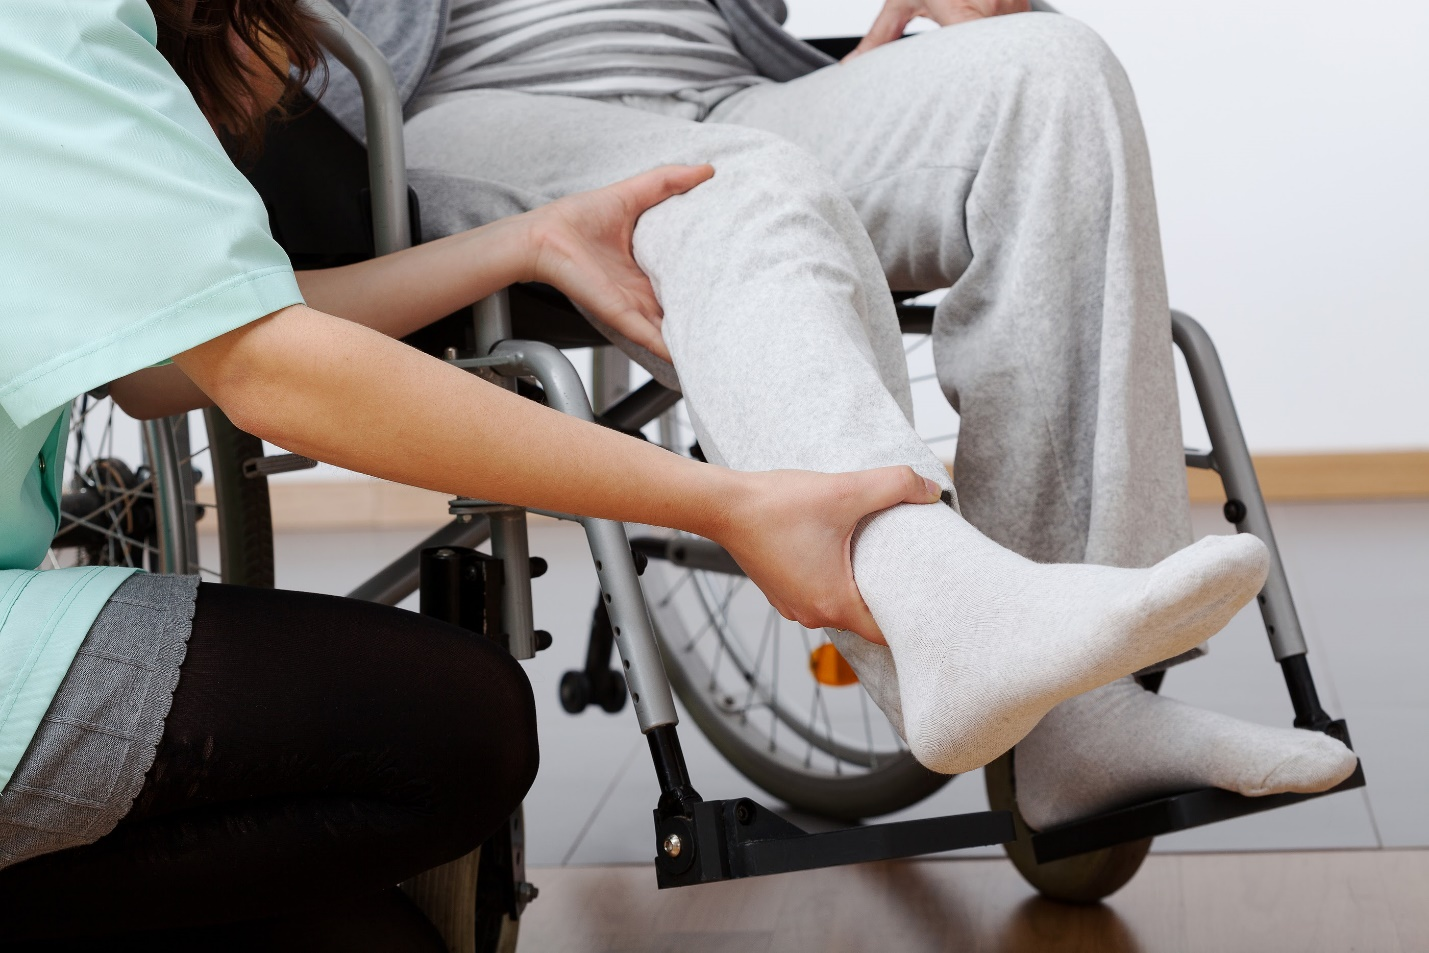 fayetteville disability attorney - 4 Factors that Can Improve Your Disability Case in Arkansas